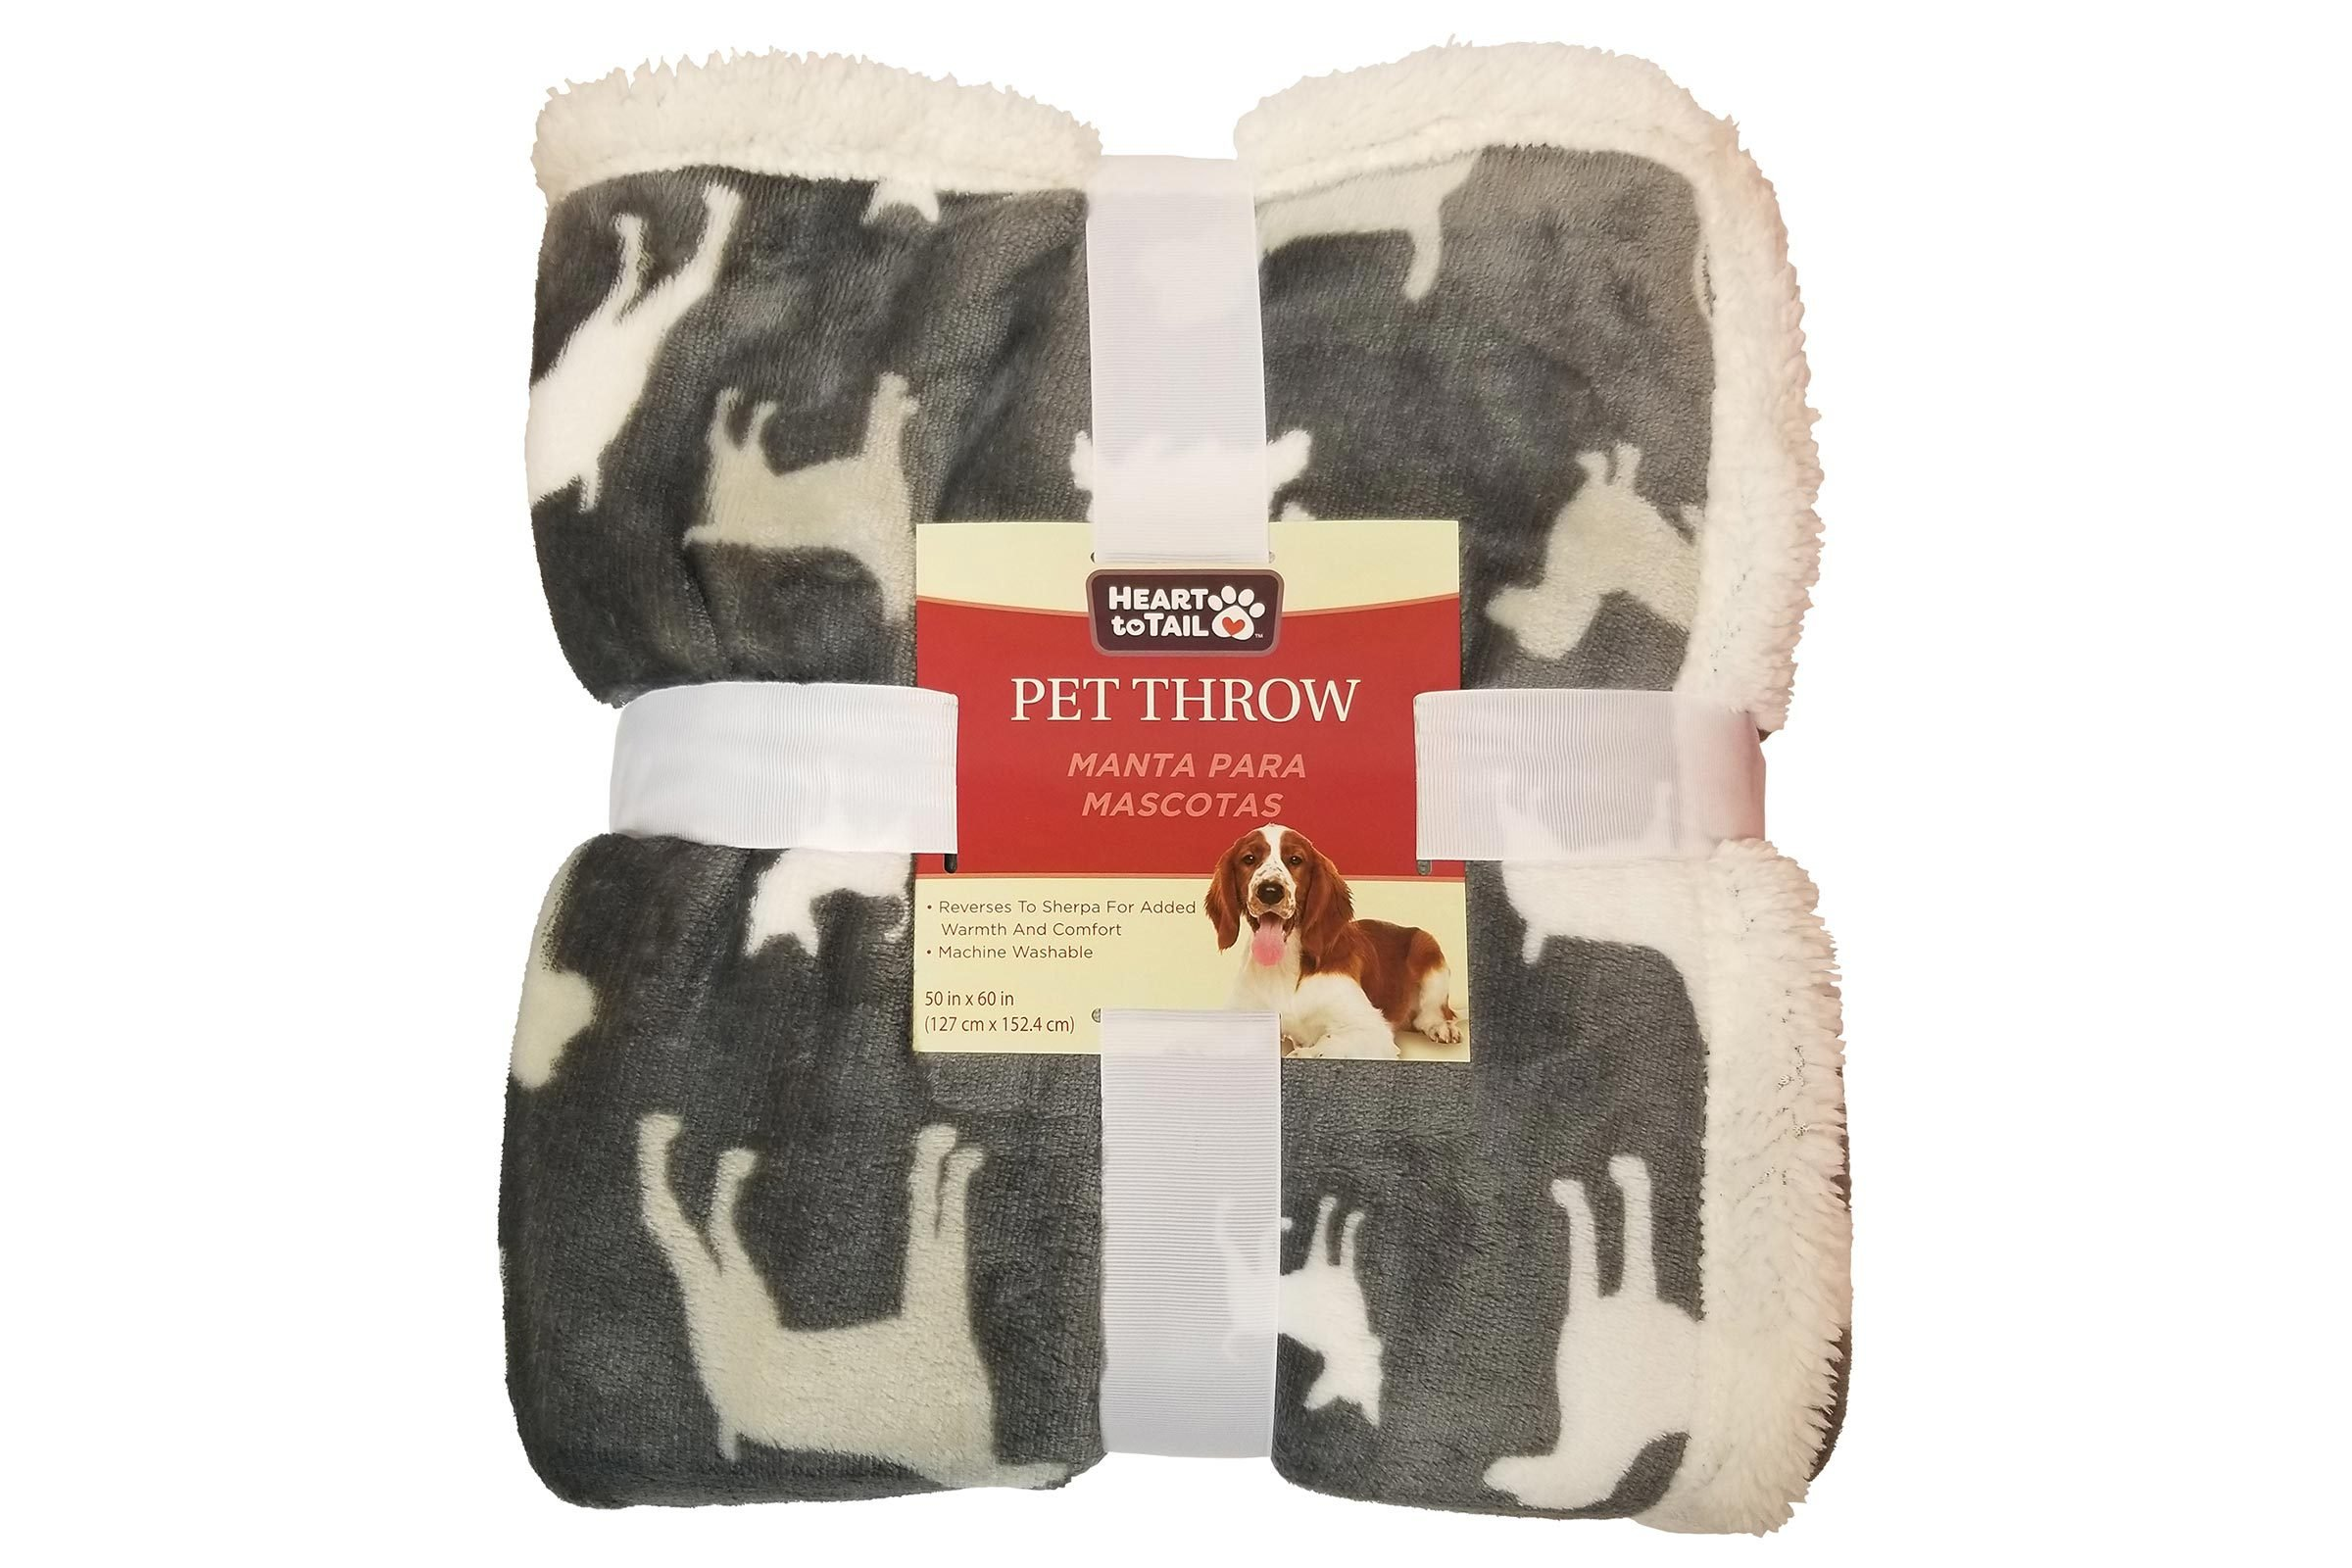 Heart to Tail Pet Throw